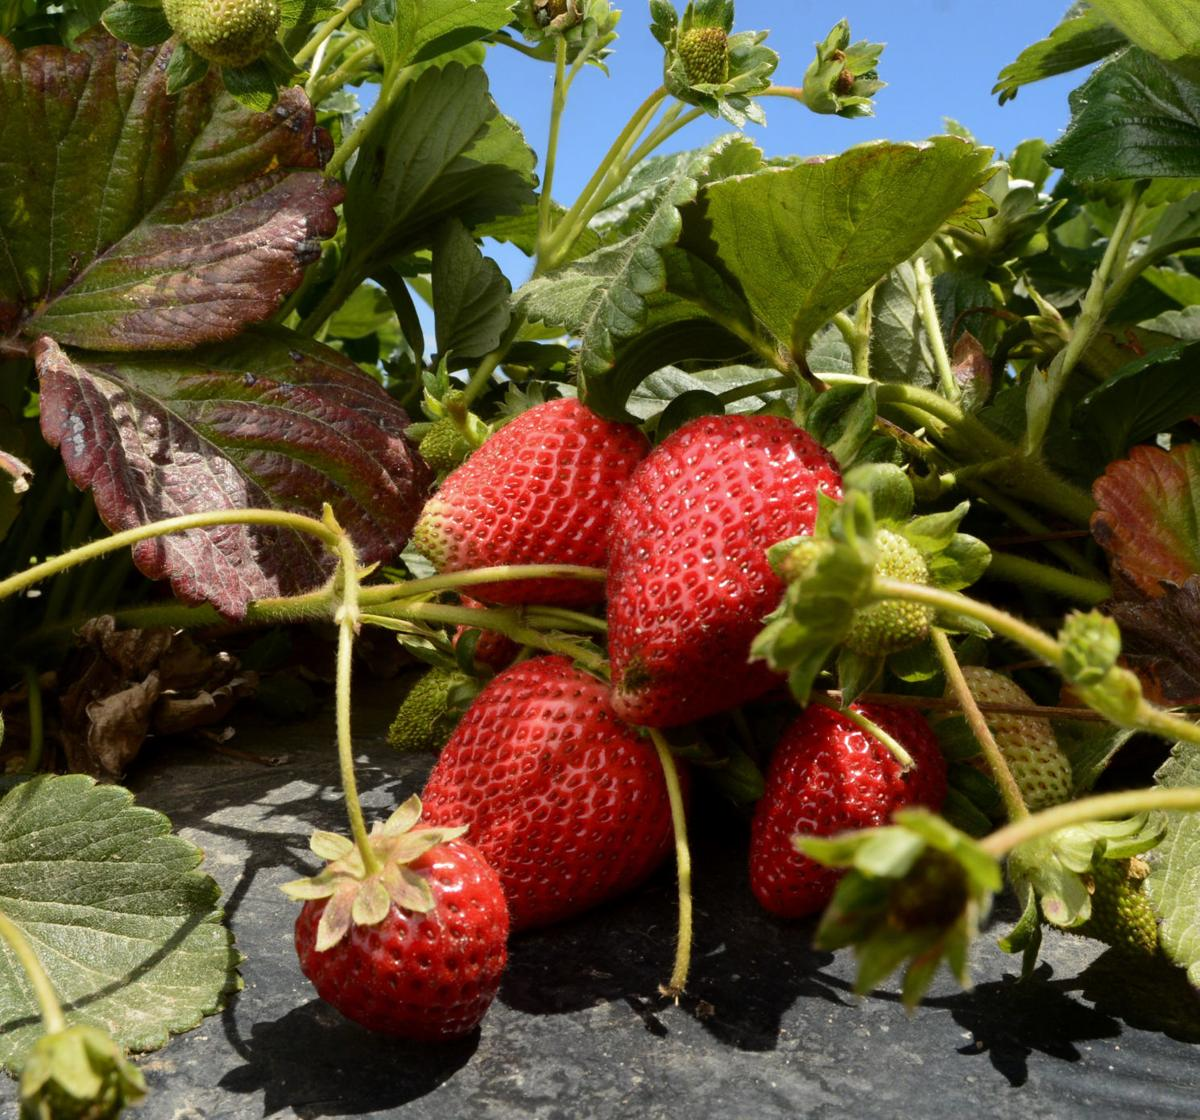 072219 Strawberries 02.jpg